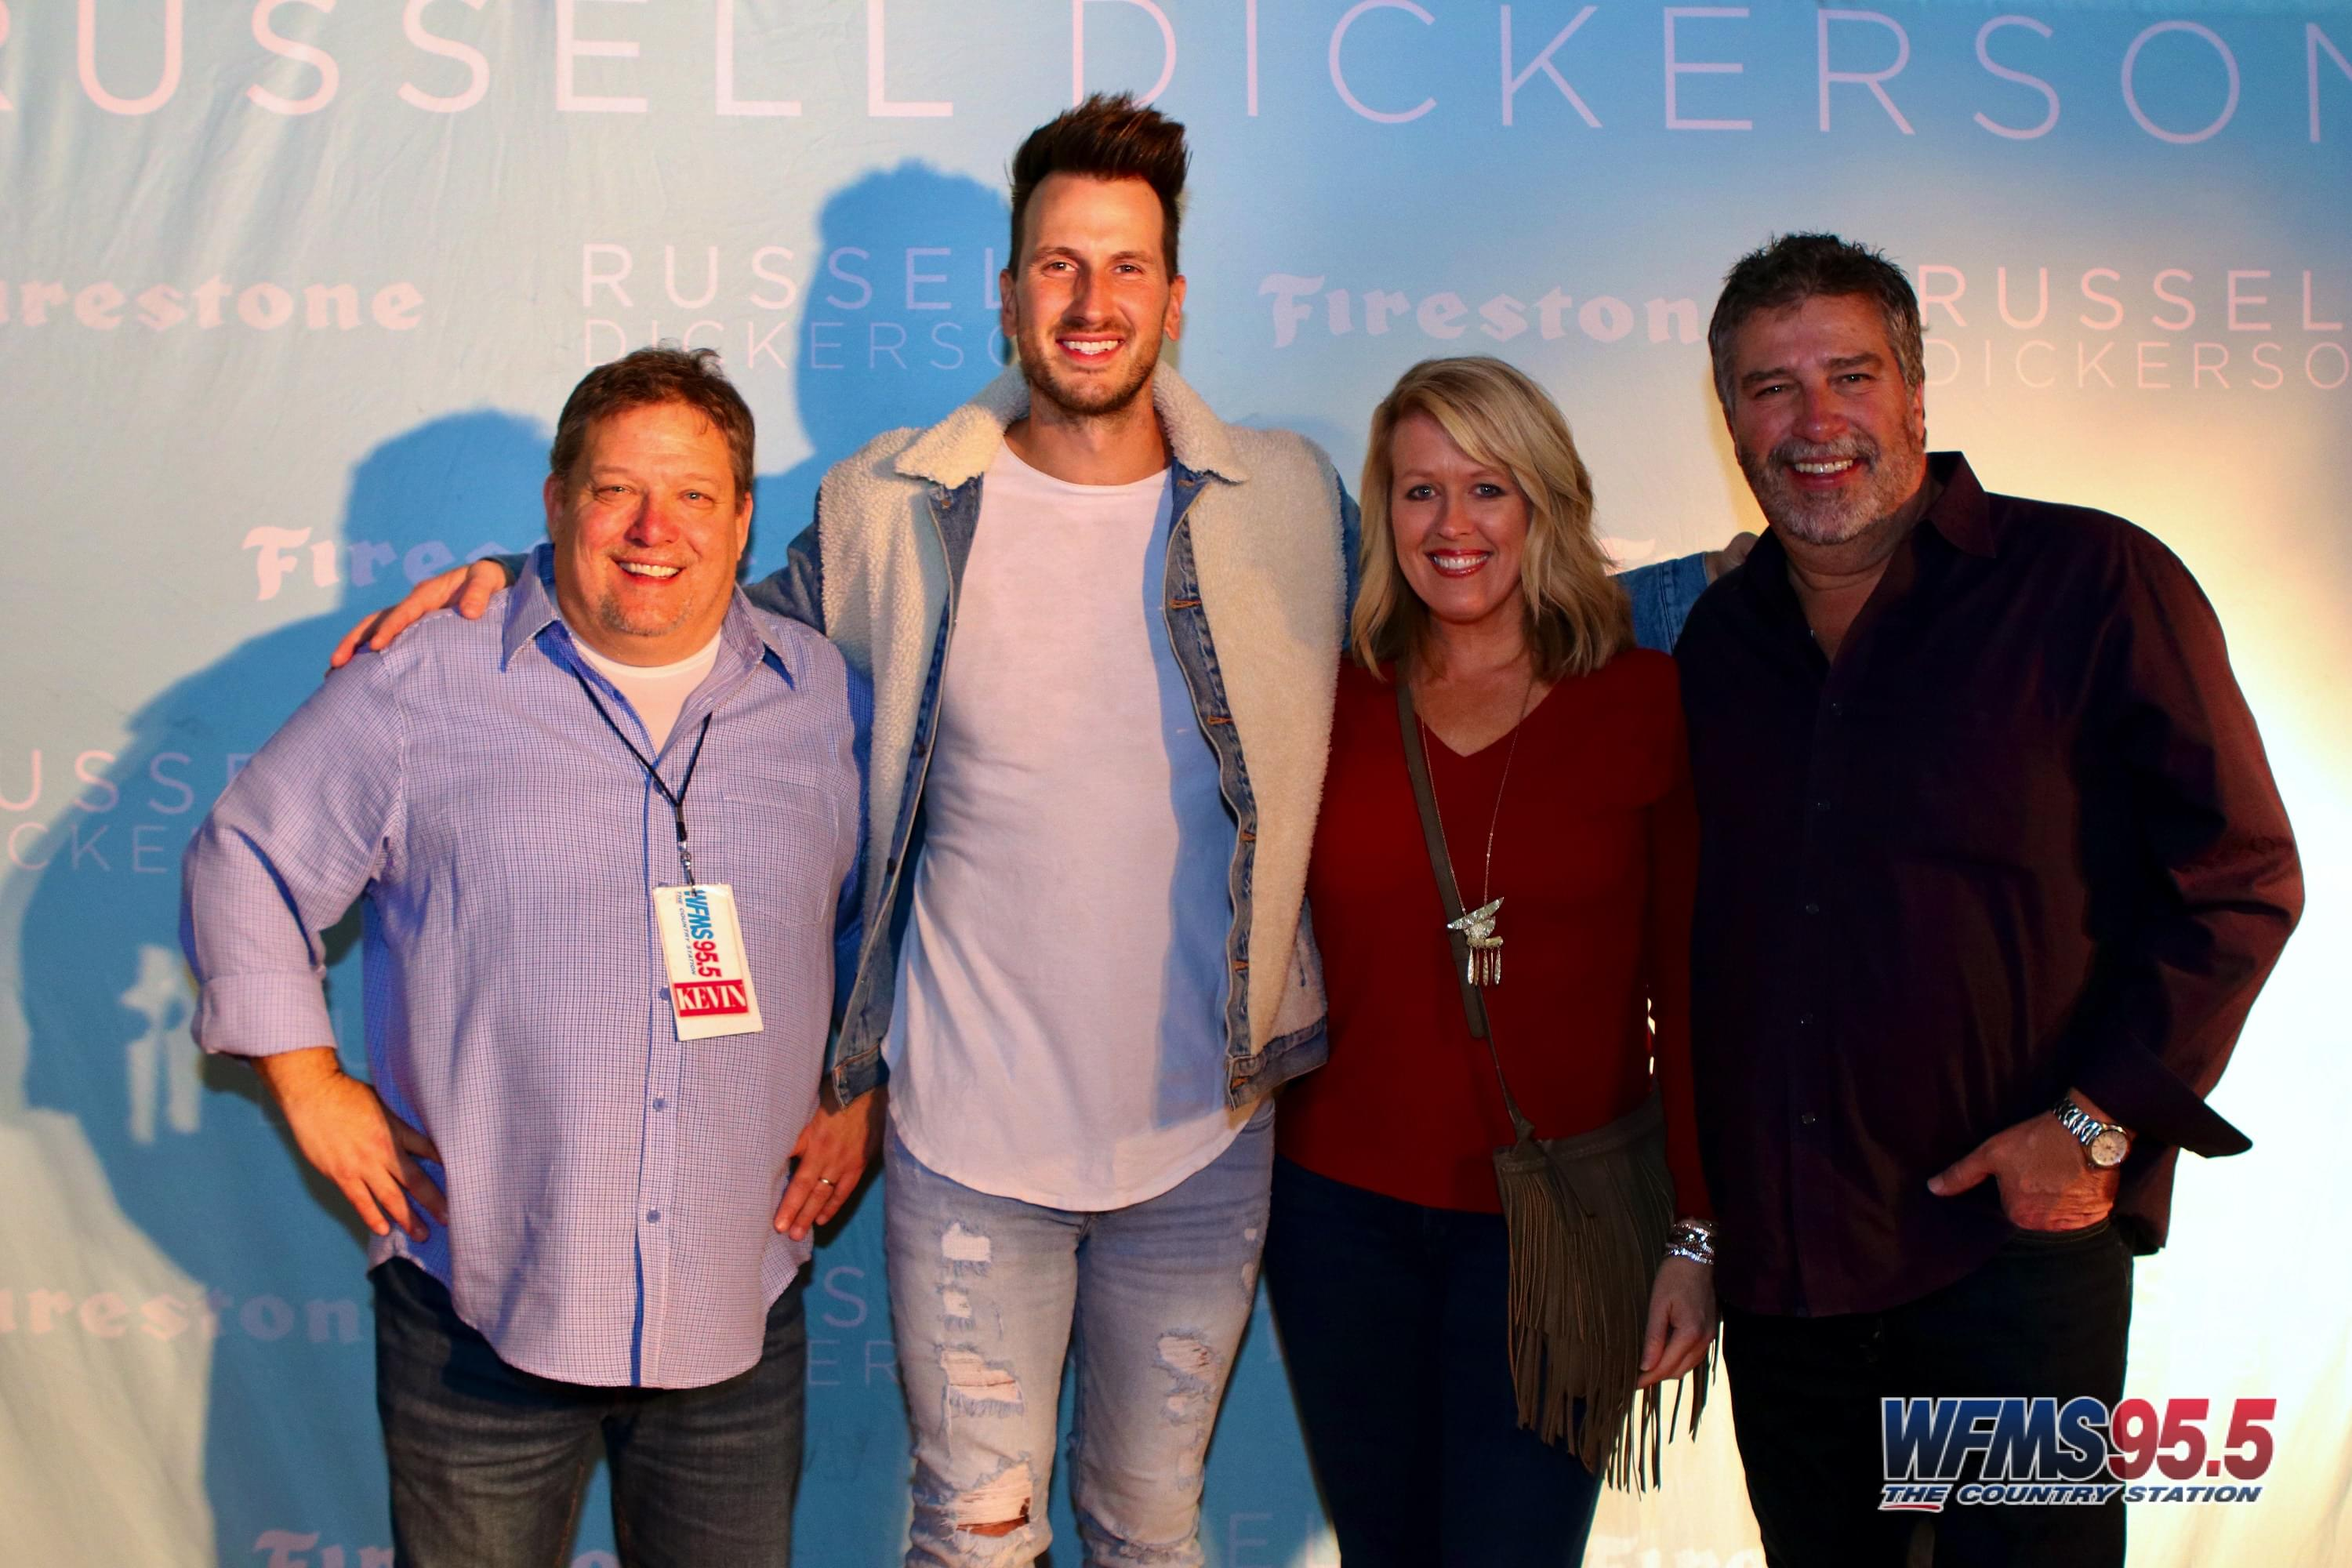 Russell Dickerson Meet and Greet Photos 11/22/2019